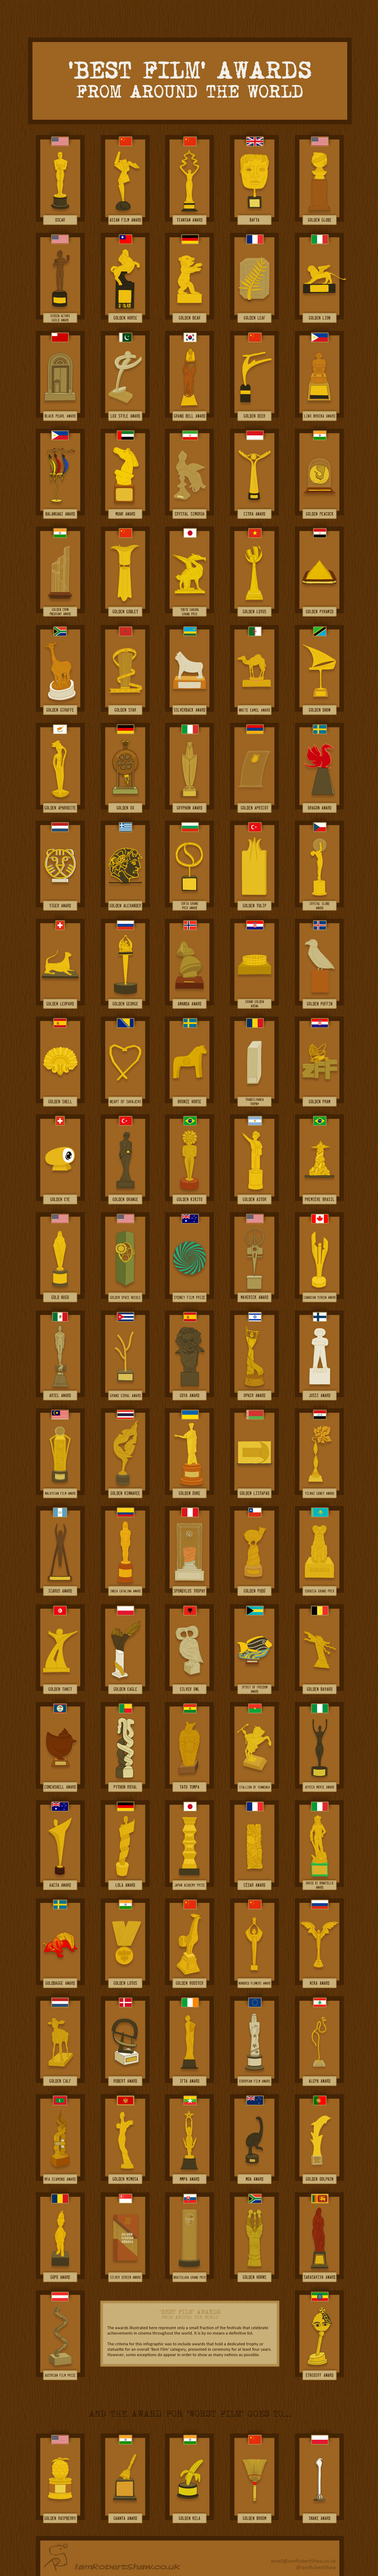 Best Film Awards From Around the World infographic